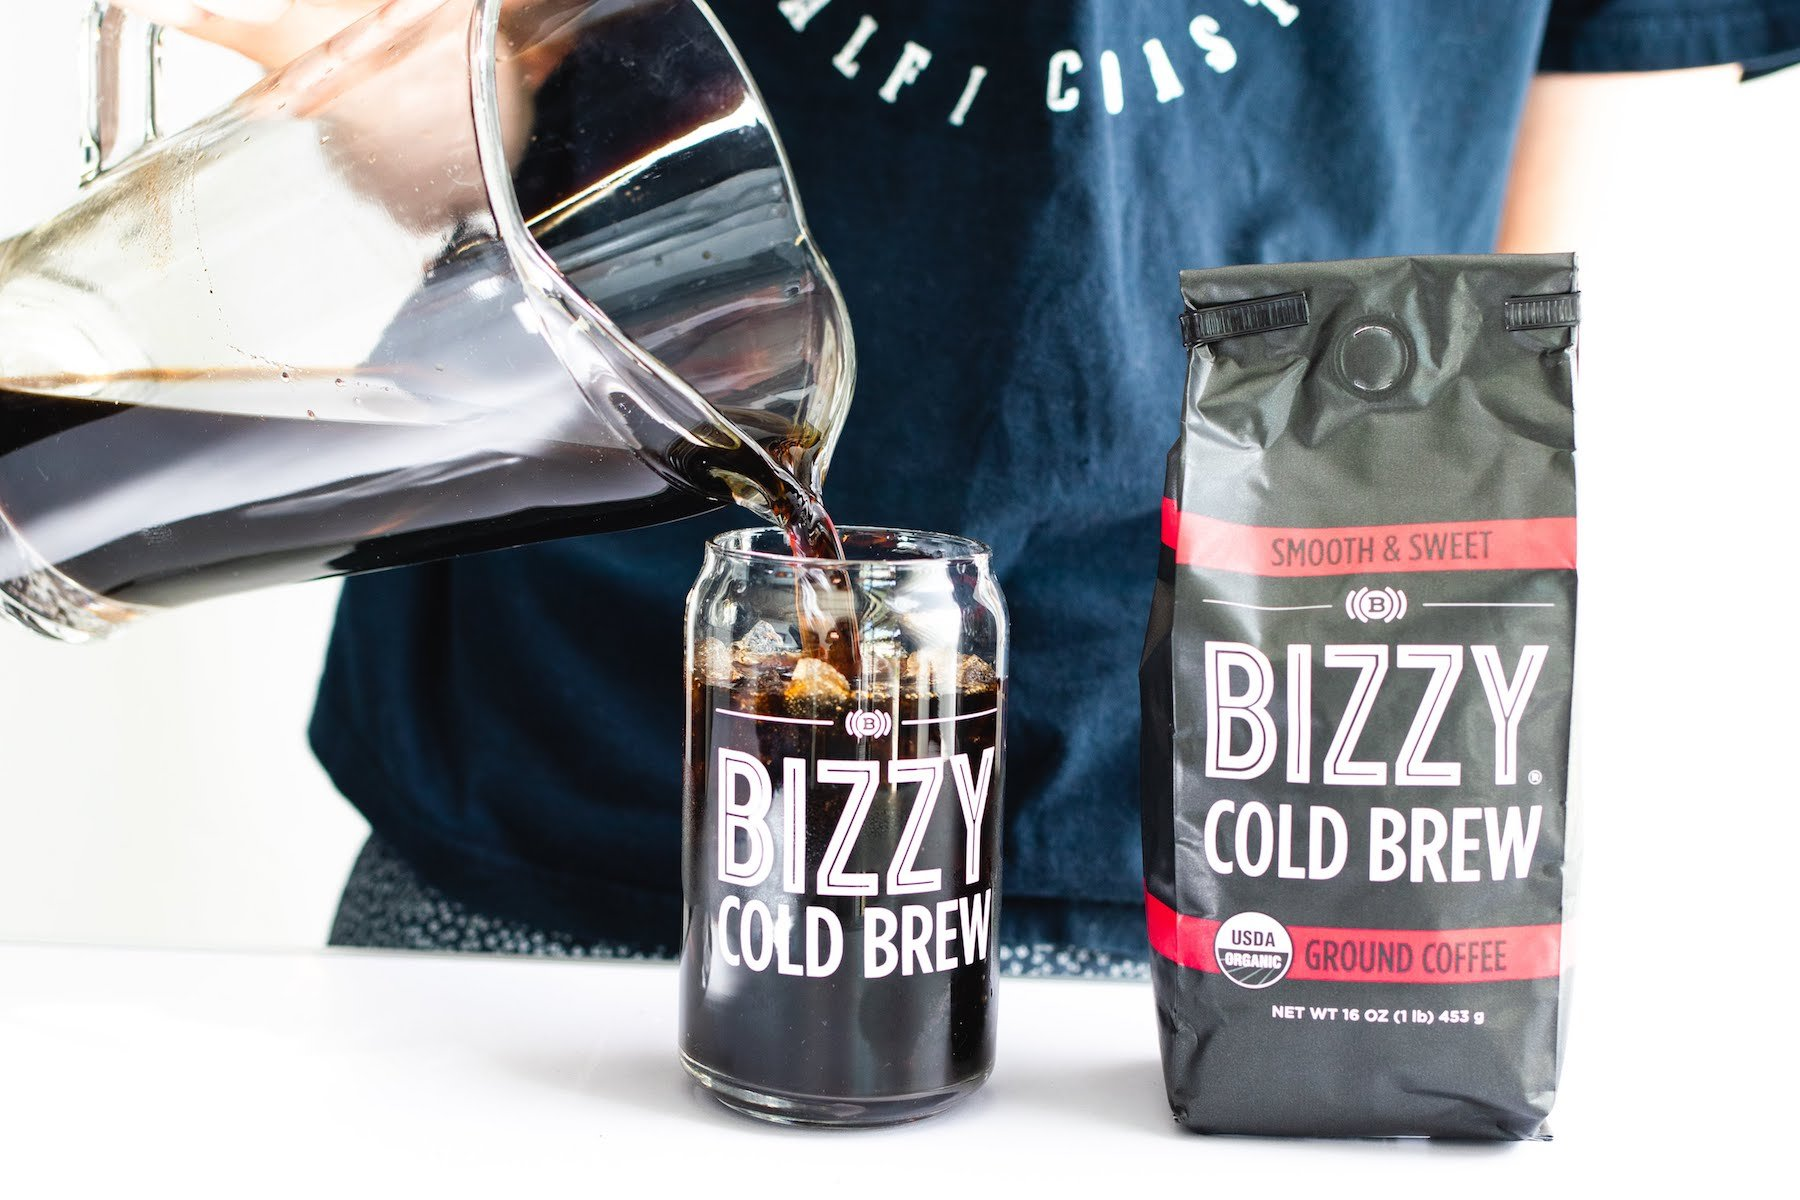 Bizzy Organic Cold Brew Coffee - Smooth & Sweet Blend - Coarse Ground Coffee - 1 Pound by Bizzy (Image #9)